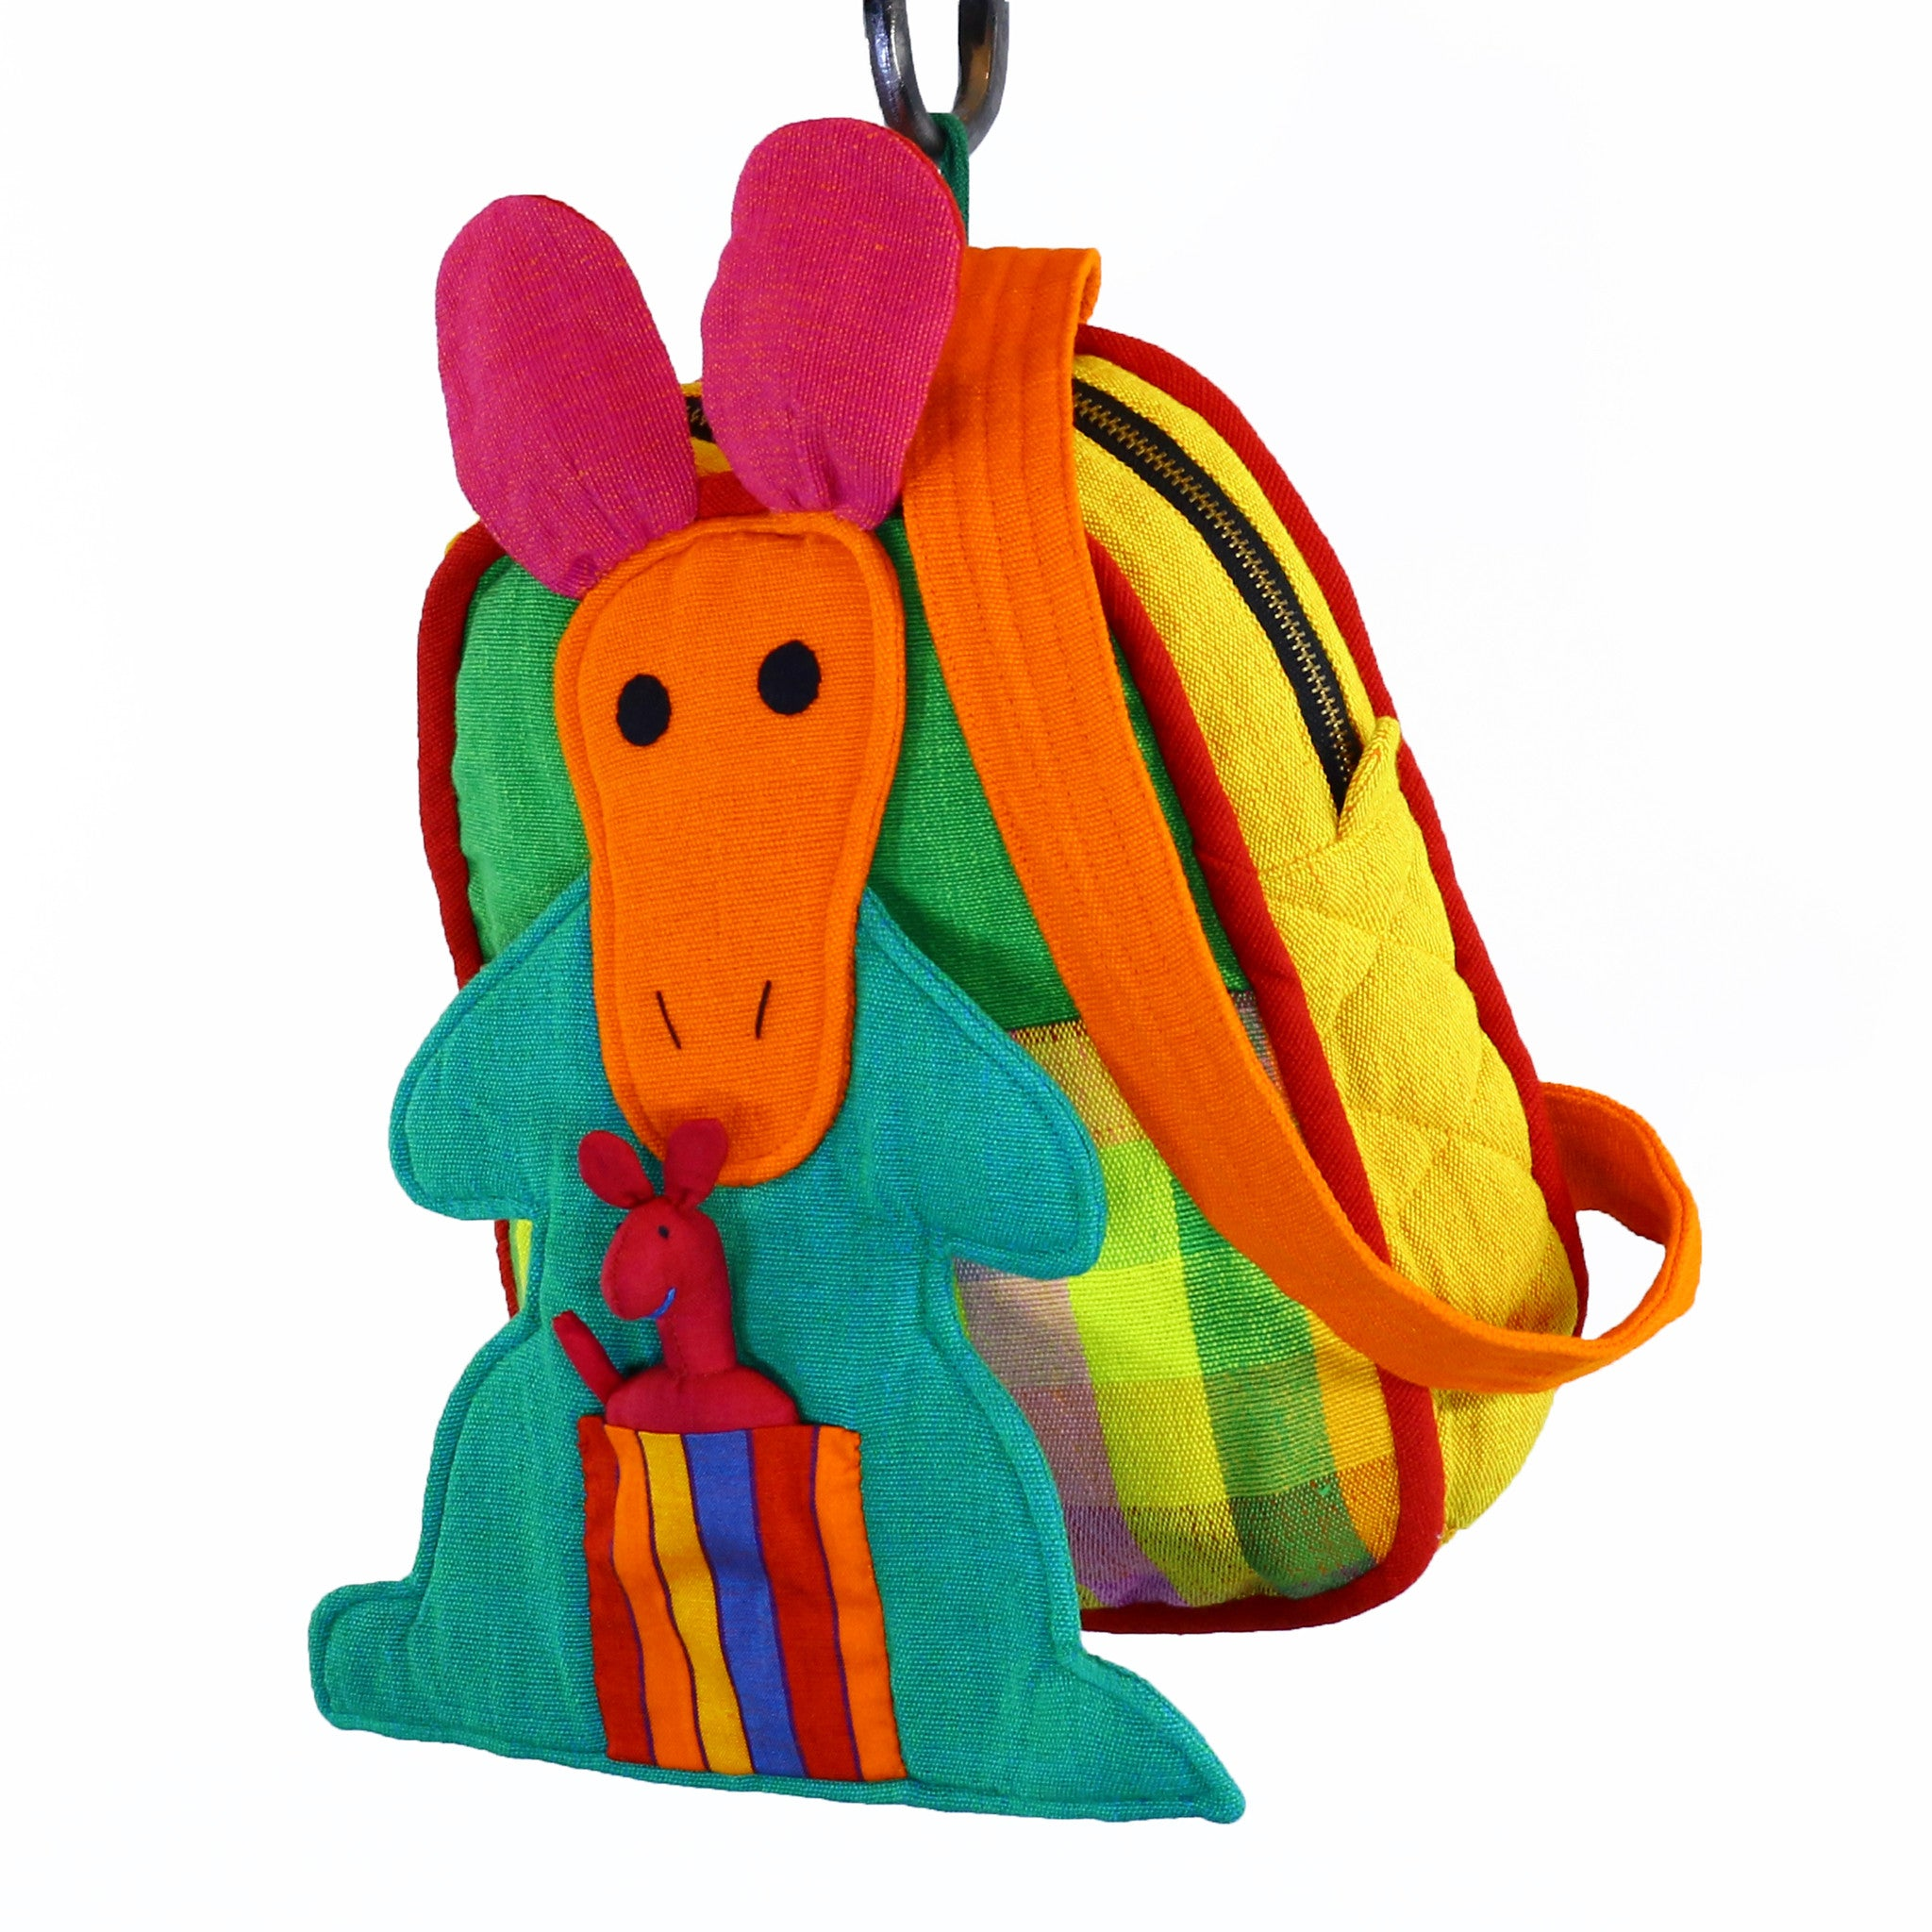 Kangaroo Backpack – Citrus fabric